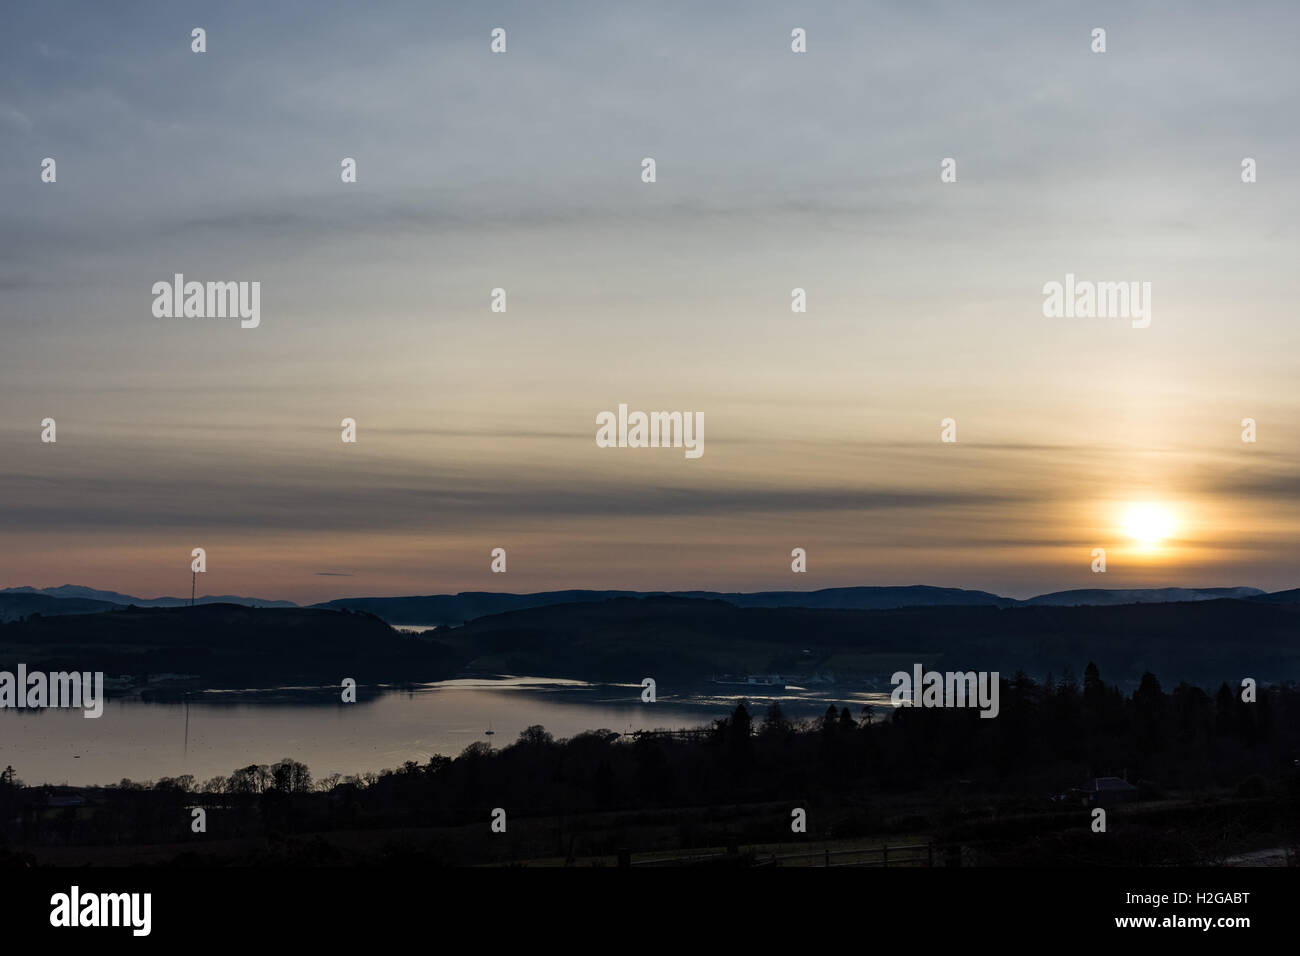 Cold winter sunset over the river Clyde Scotland UK - Stock Image